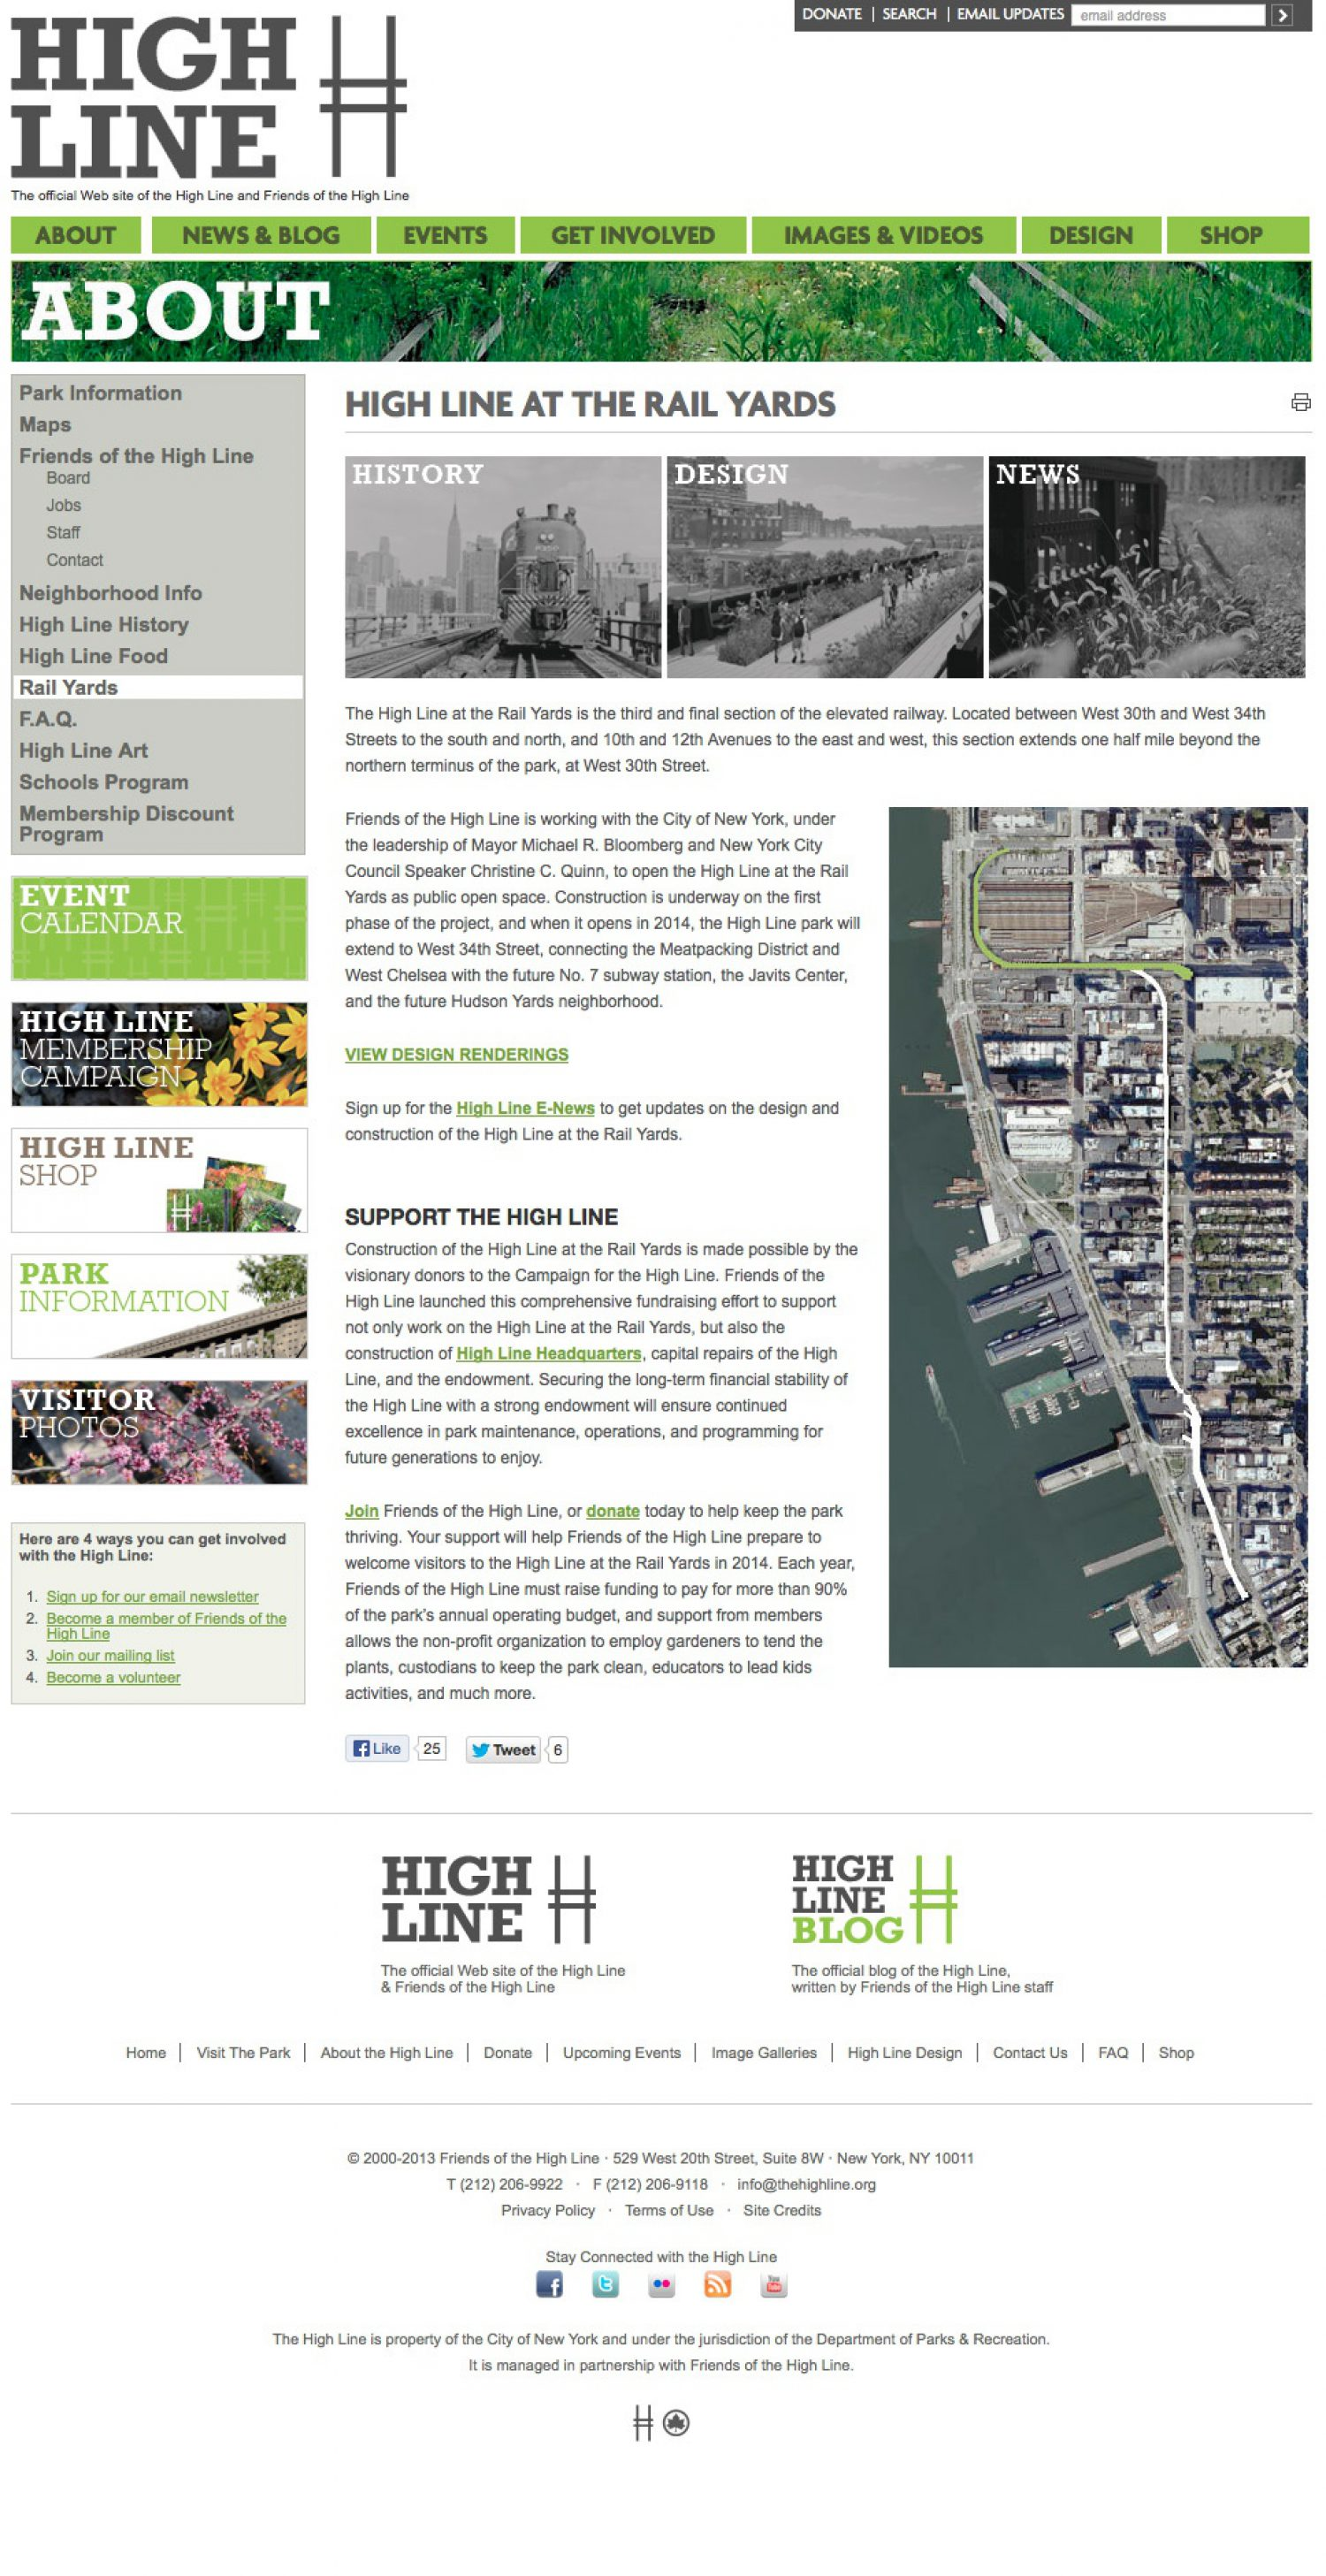 Screenshot of the High Line website's about page